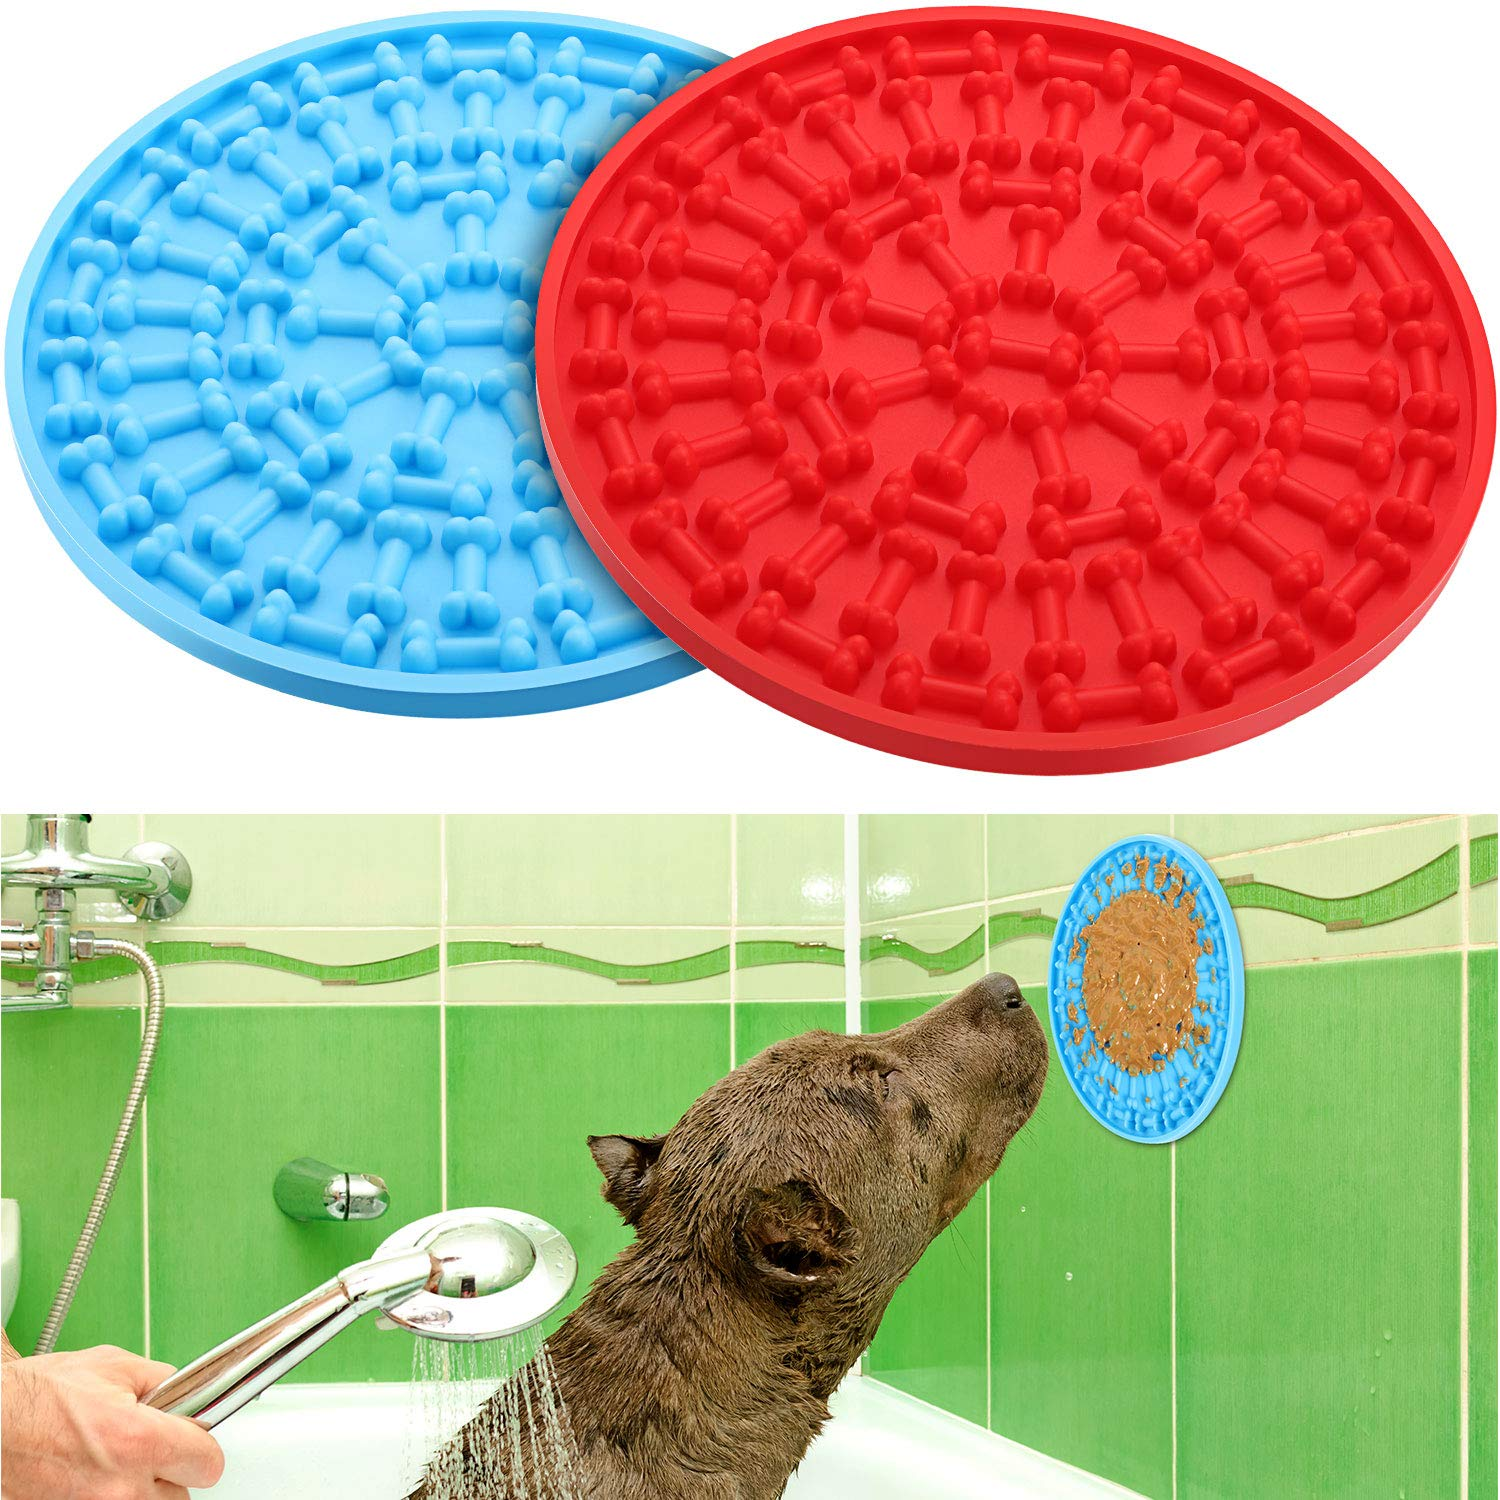 2 Pieces Dog Lick Mat Treat Dispensing Mat Dog Peanut Lick Mat Slow Feeders Distraction Device with Suction Cup to Wall for Bath Grooming (Blue and Red)